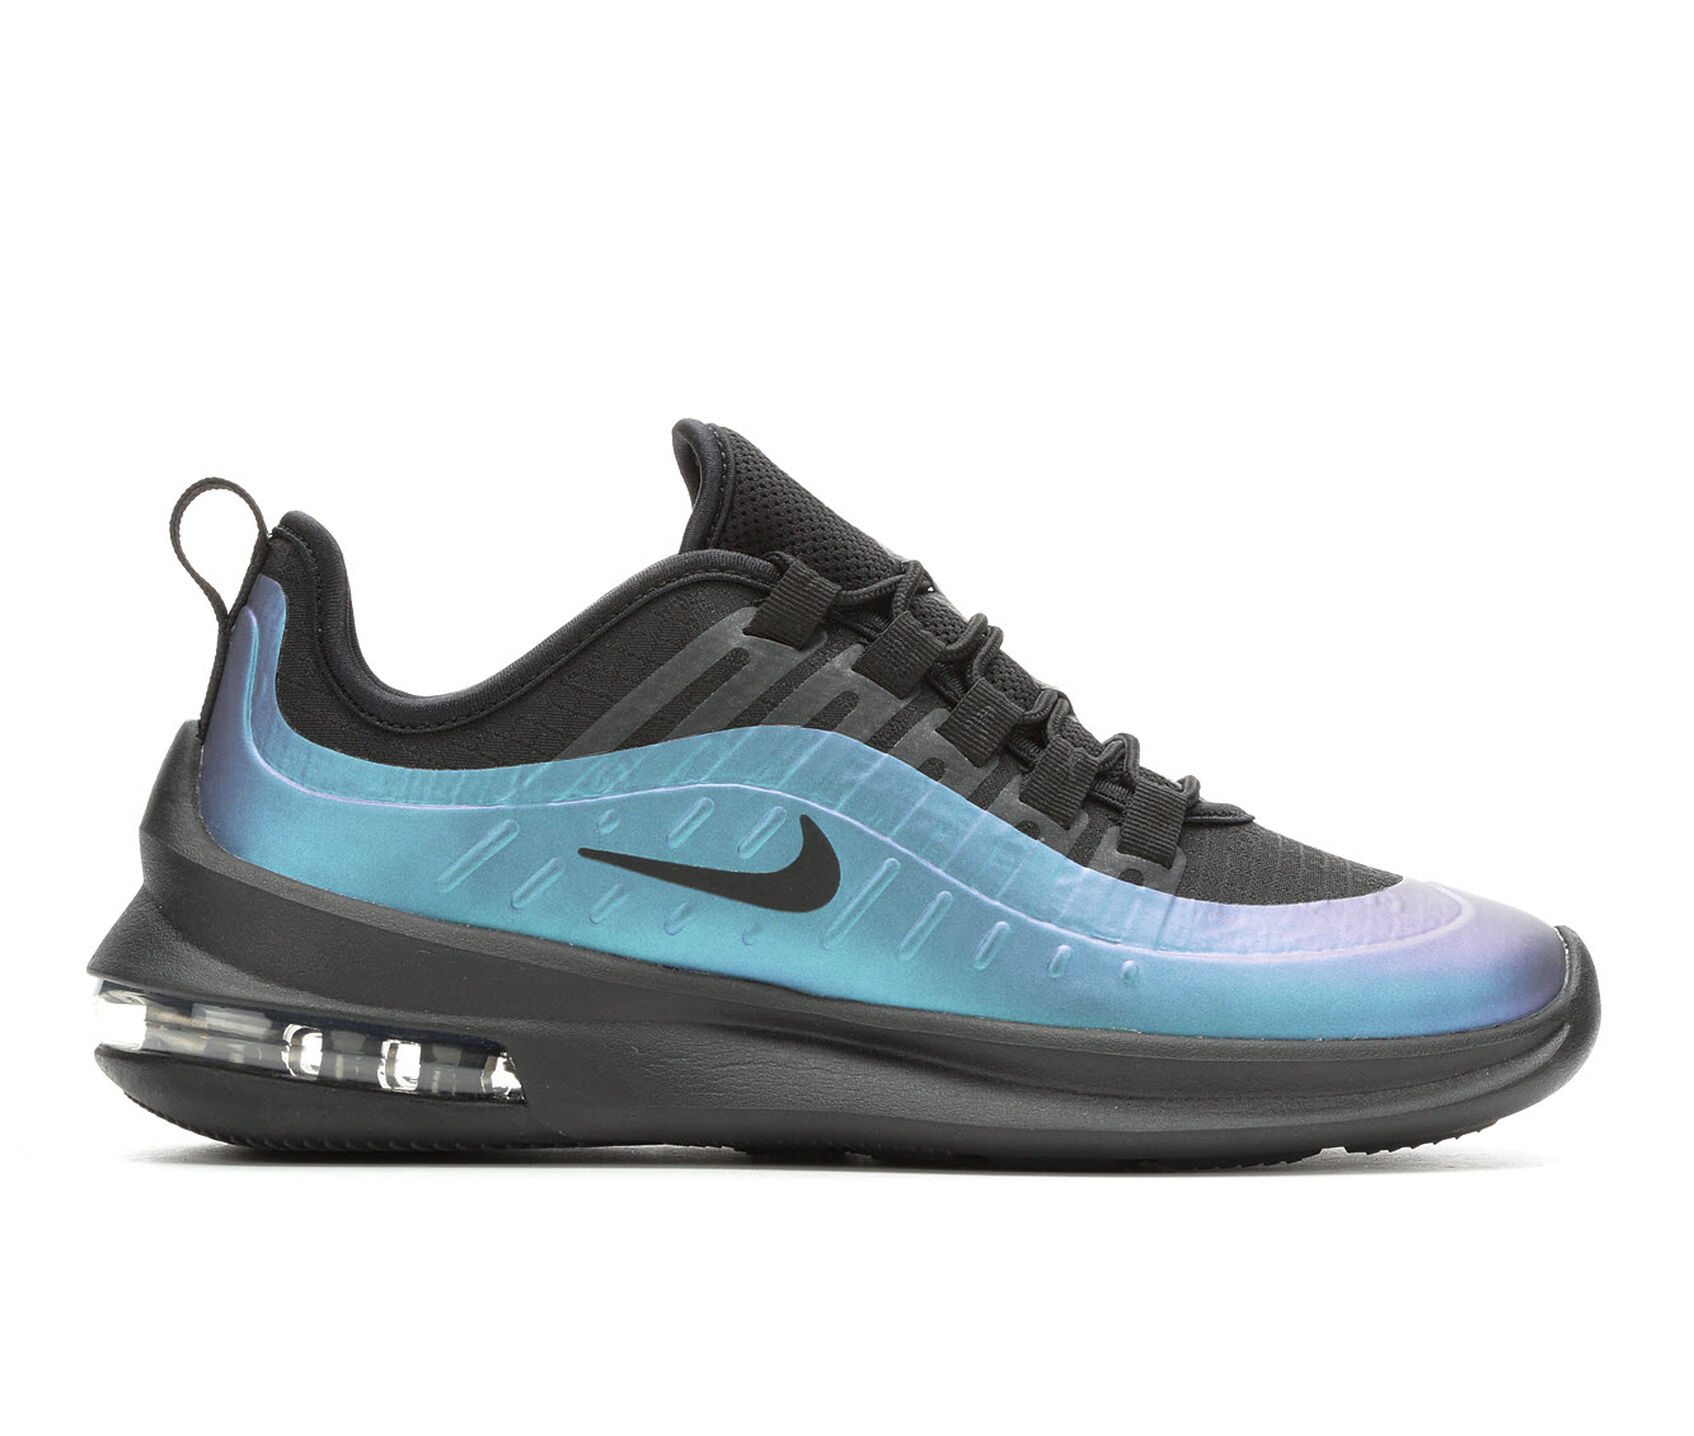 wholesale dealer c3ba2 fa81d Women s Nike Air Max Axis Running Shoes   Shoe Carnival